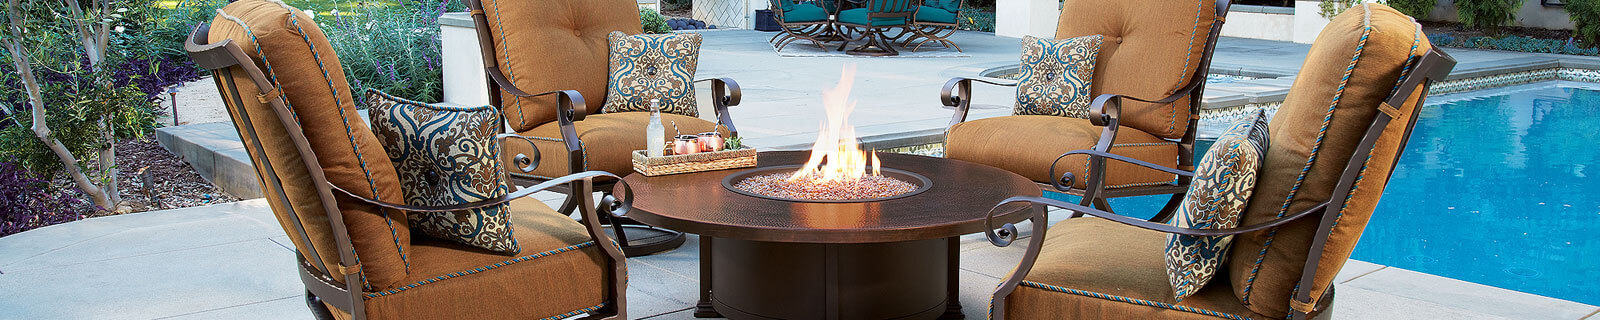 Orange County Fireplaces, Fire Pits, BBQs Sales